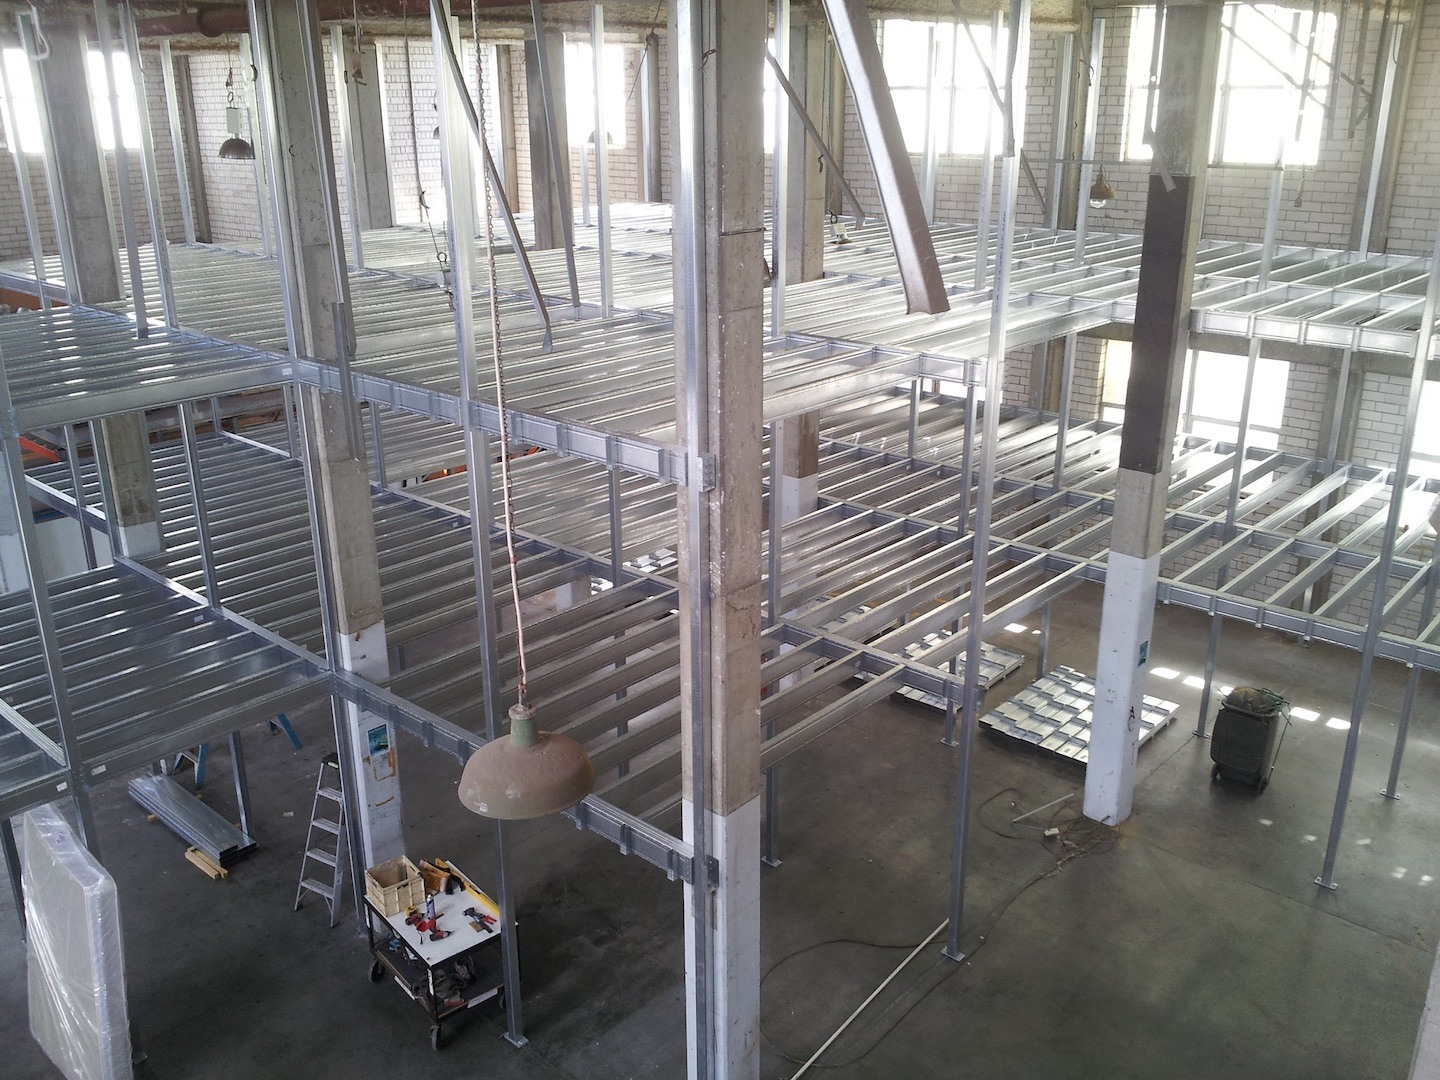 Boxspan mezzanine floor frames in a factory space for storage lockers.